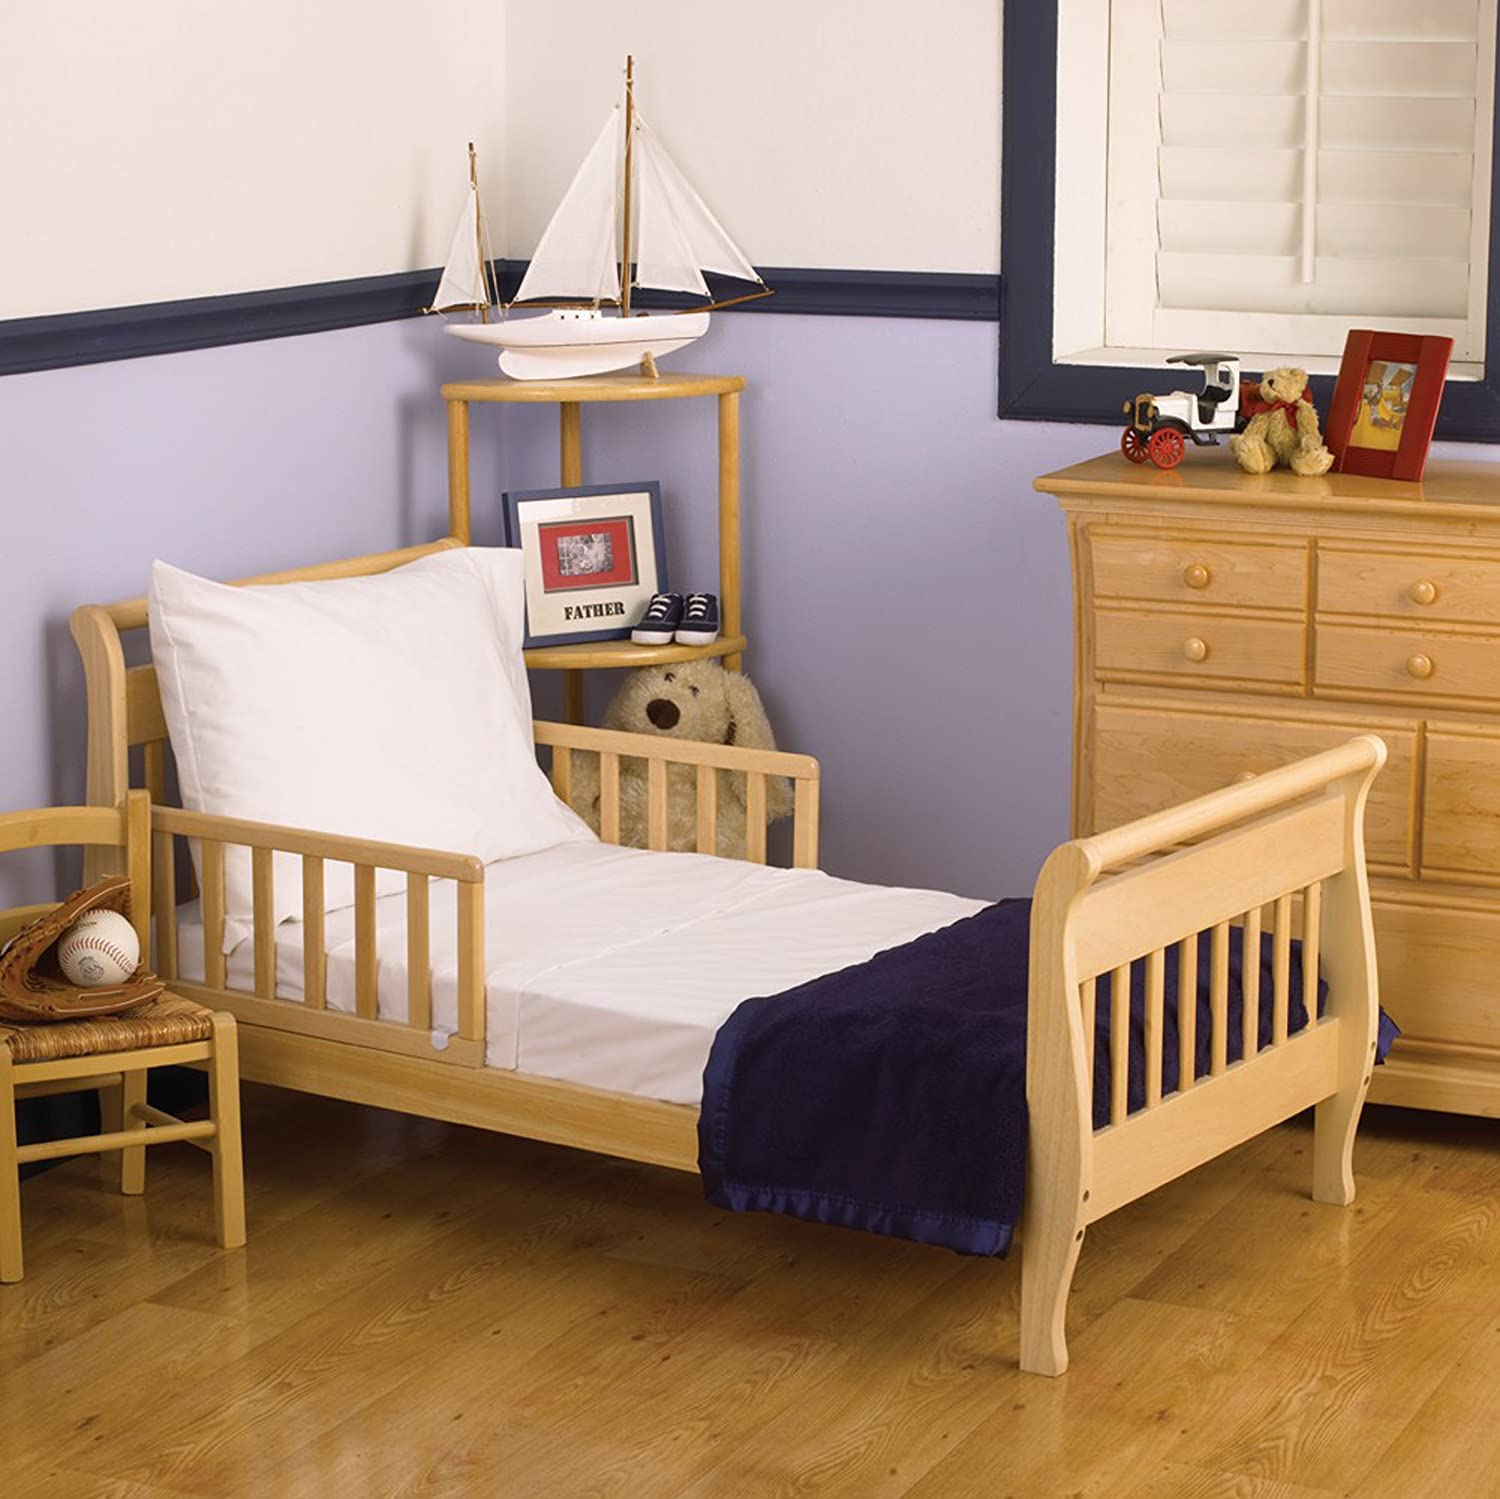 Amazon.com: Sheets - Toddler Bedding: Baby Products: Flat, Fitted